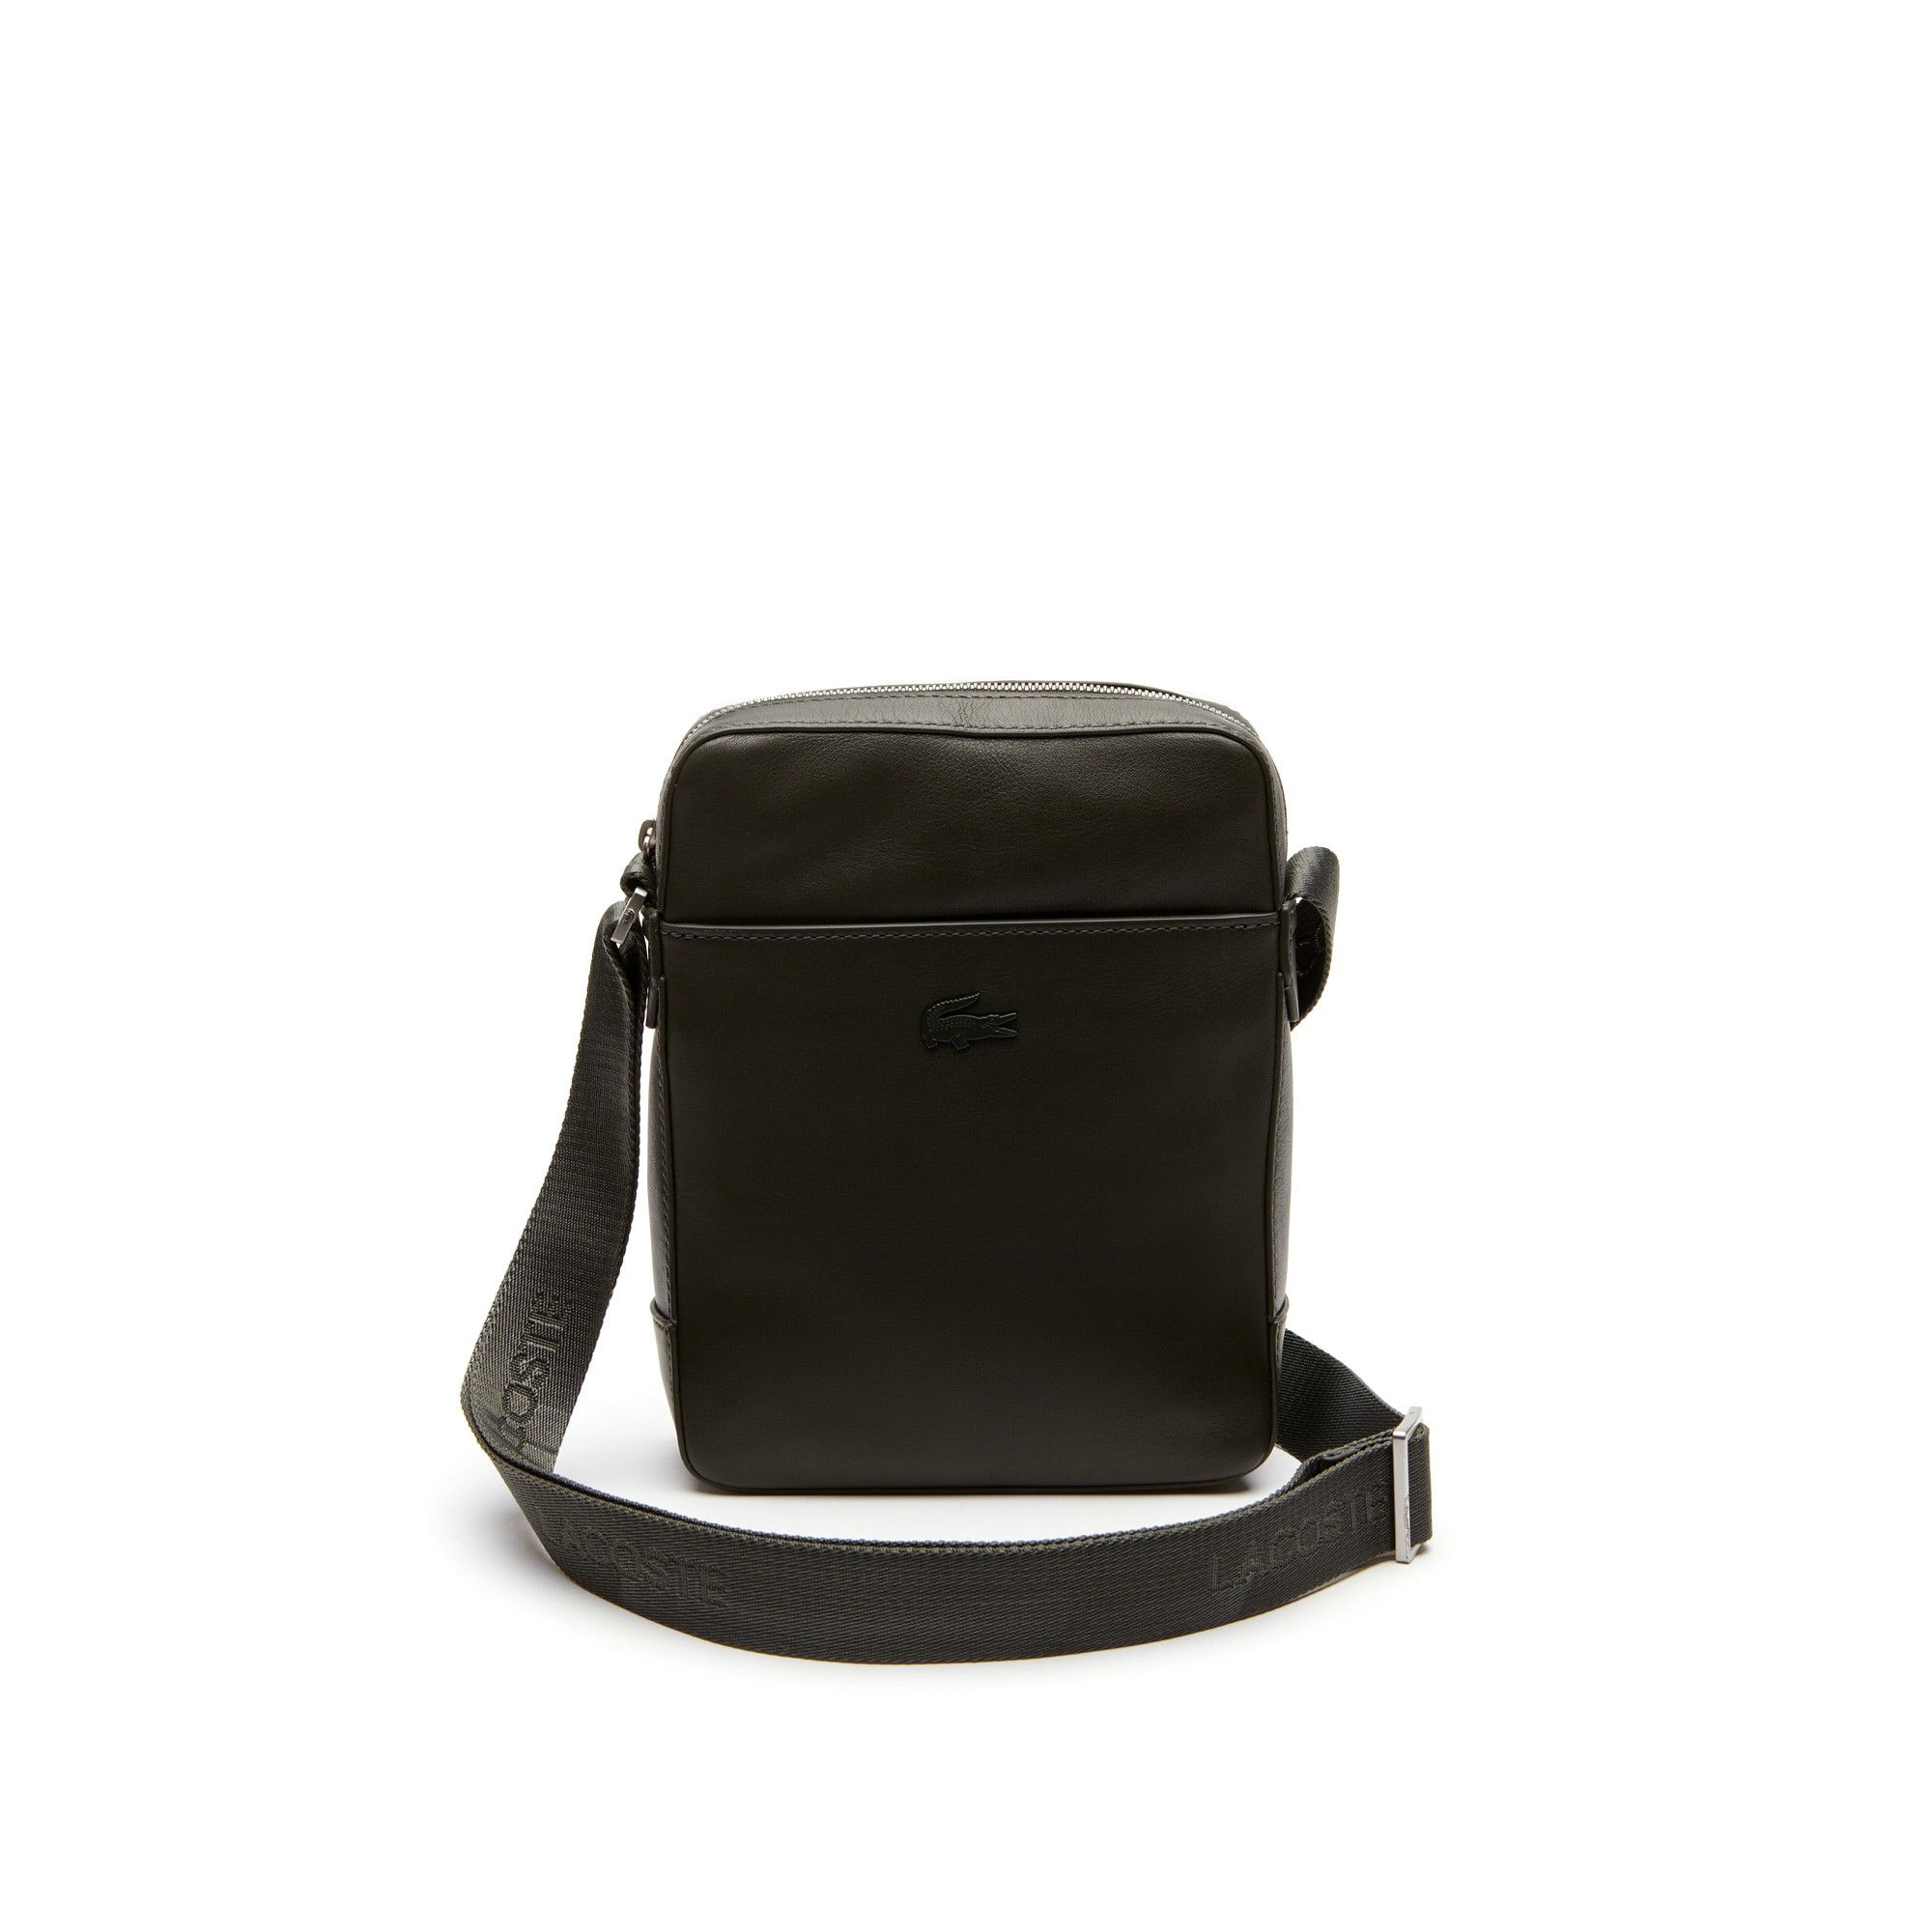 LACOSTE Men s Full Ace Soft Leather Bag - forest night.  lacoste  bags   0140e20b3bbda